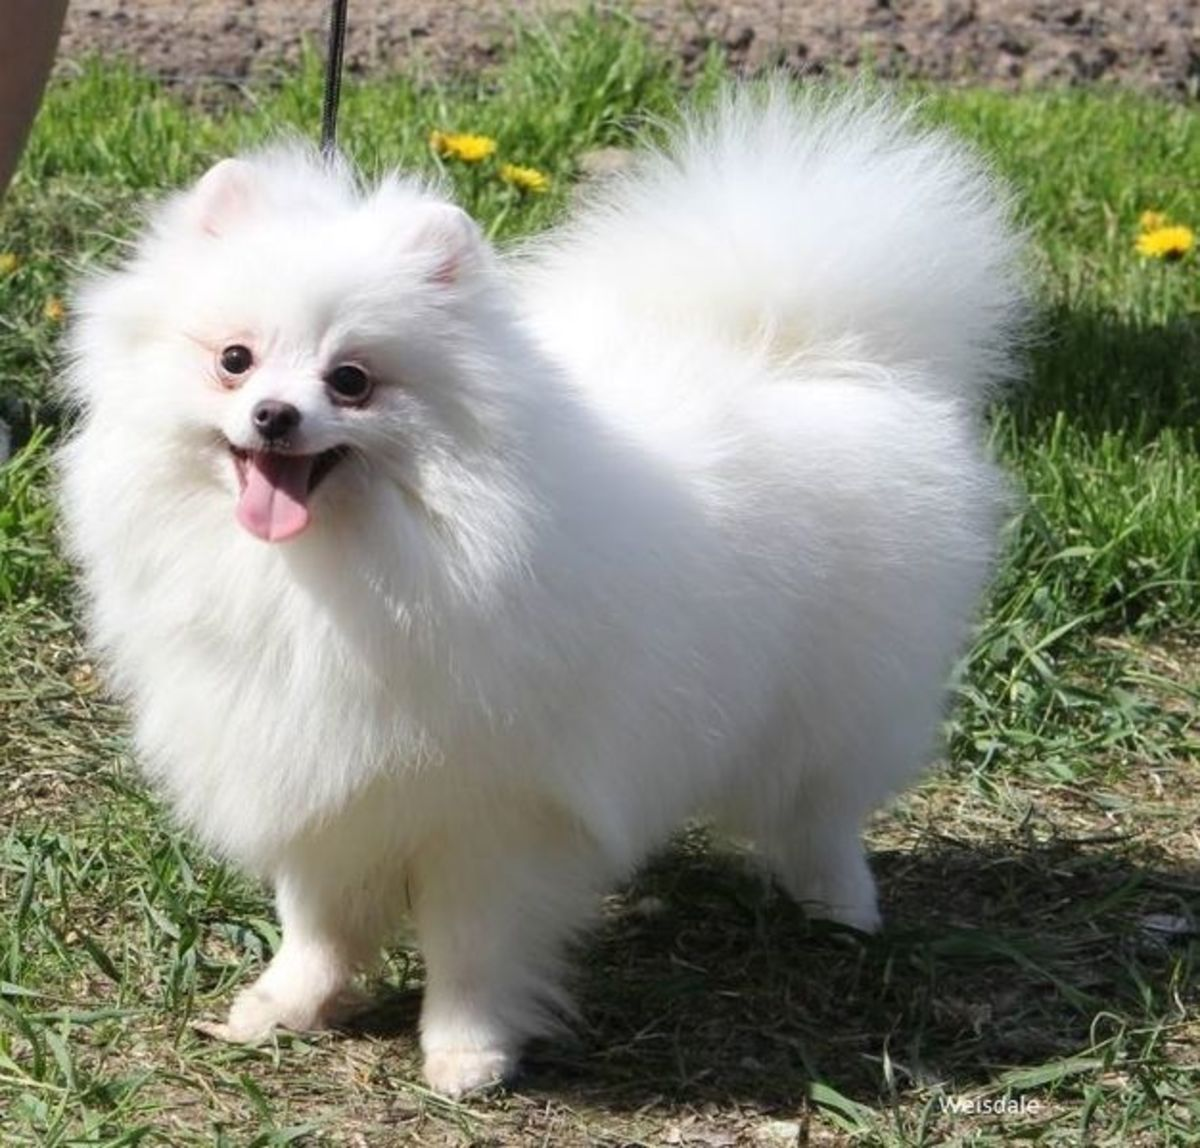 White is one of the more common coat colors for Pomeranians.